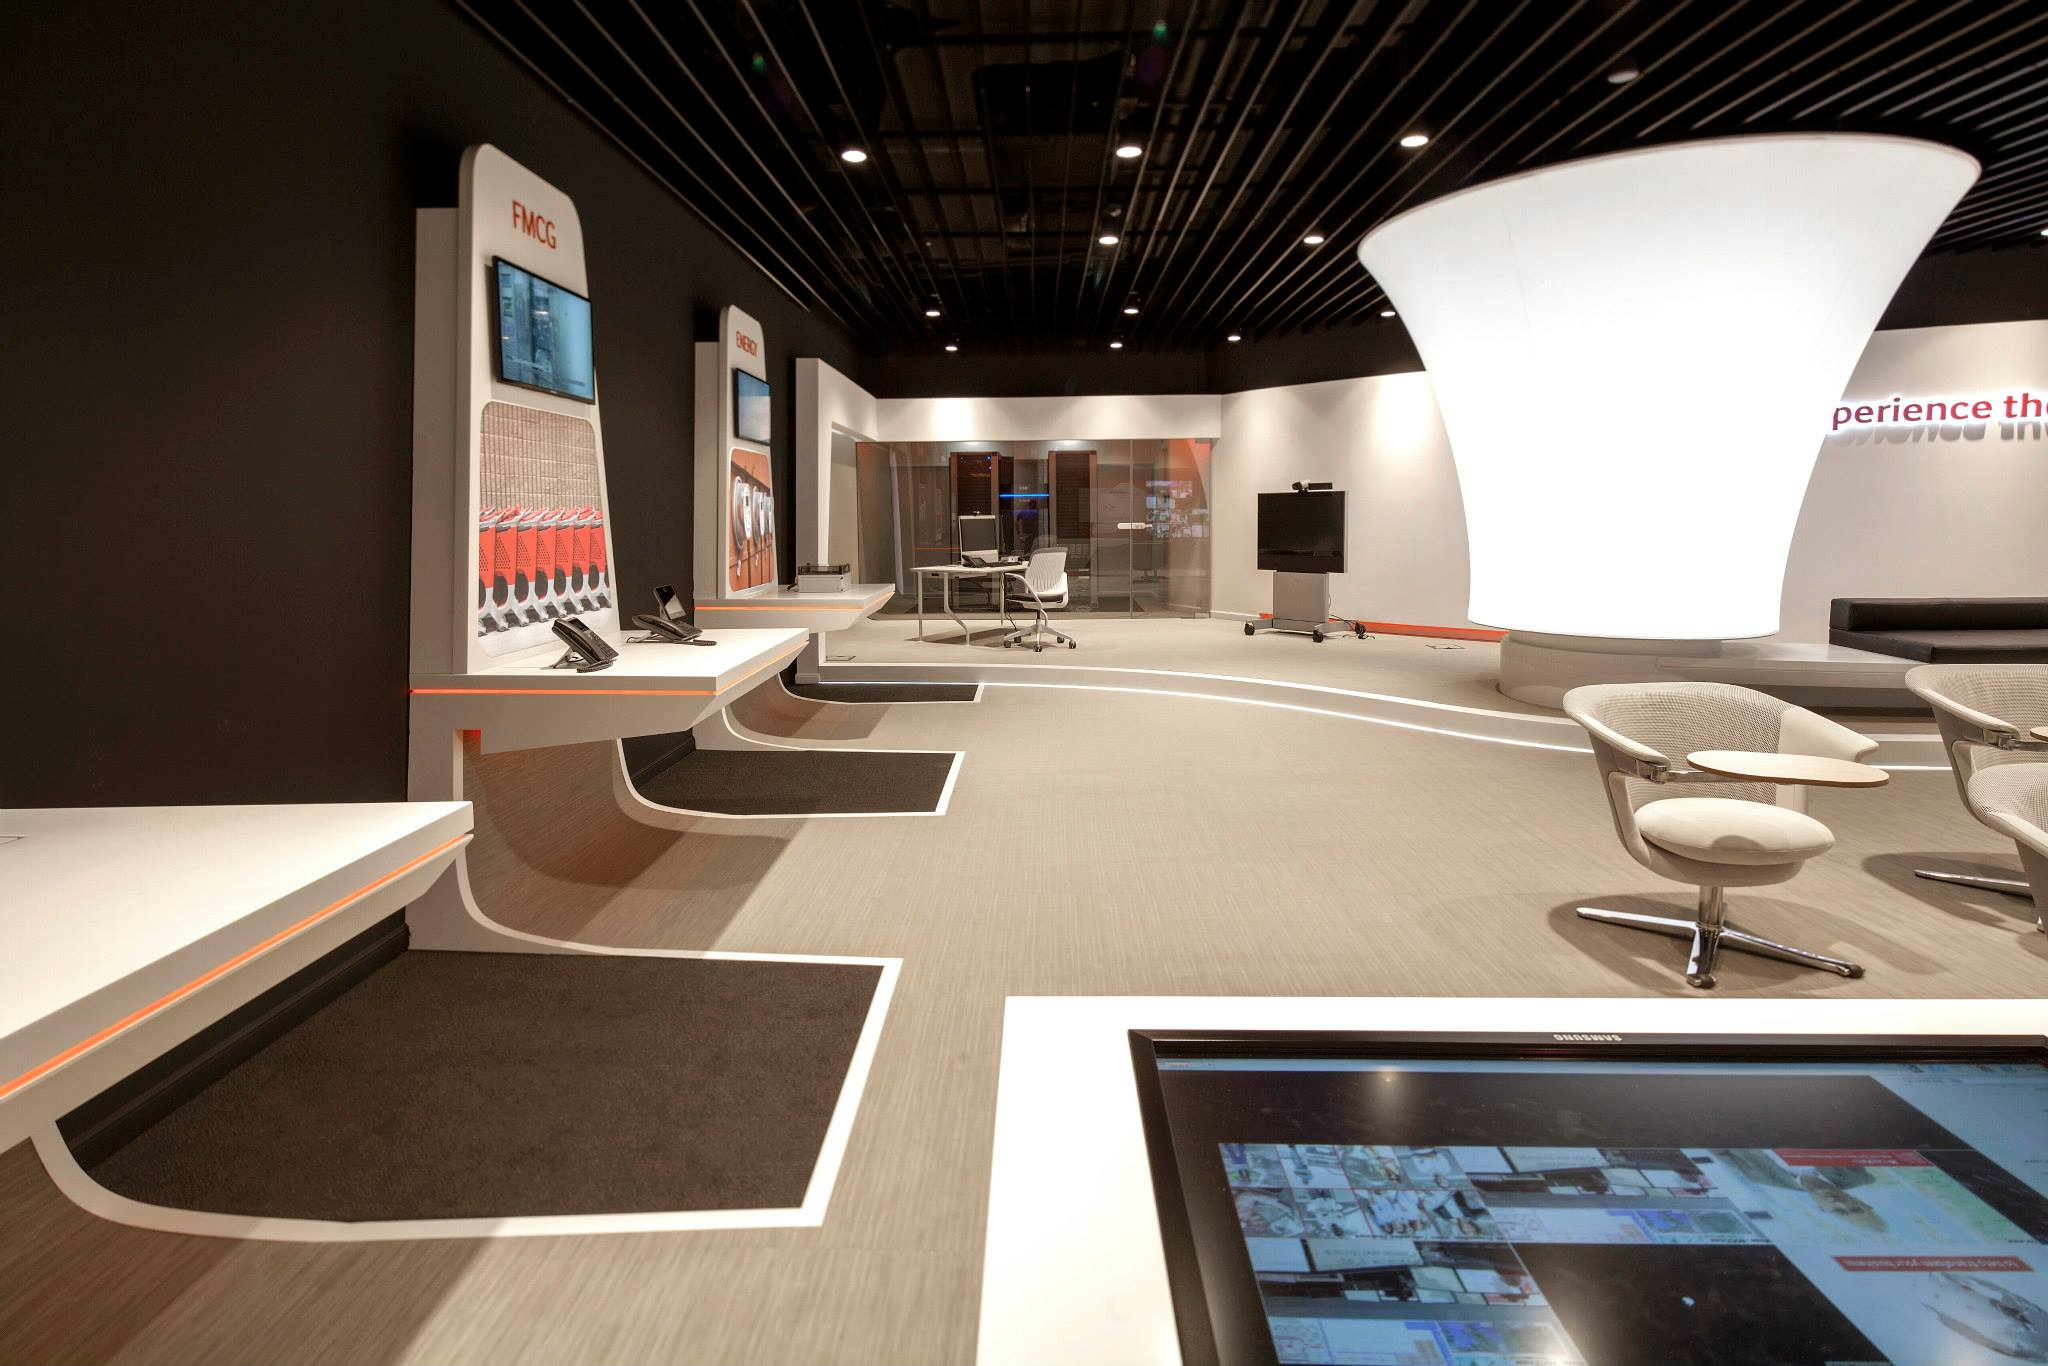 VODAFONE-Customer-Experience-Center-Pipera_Trivenus-Ama-Design_06